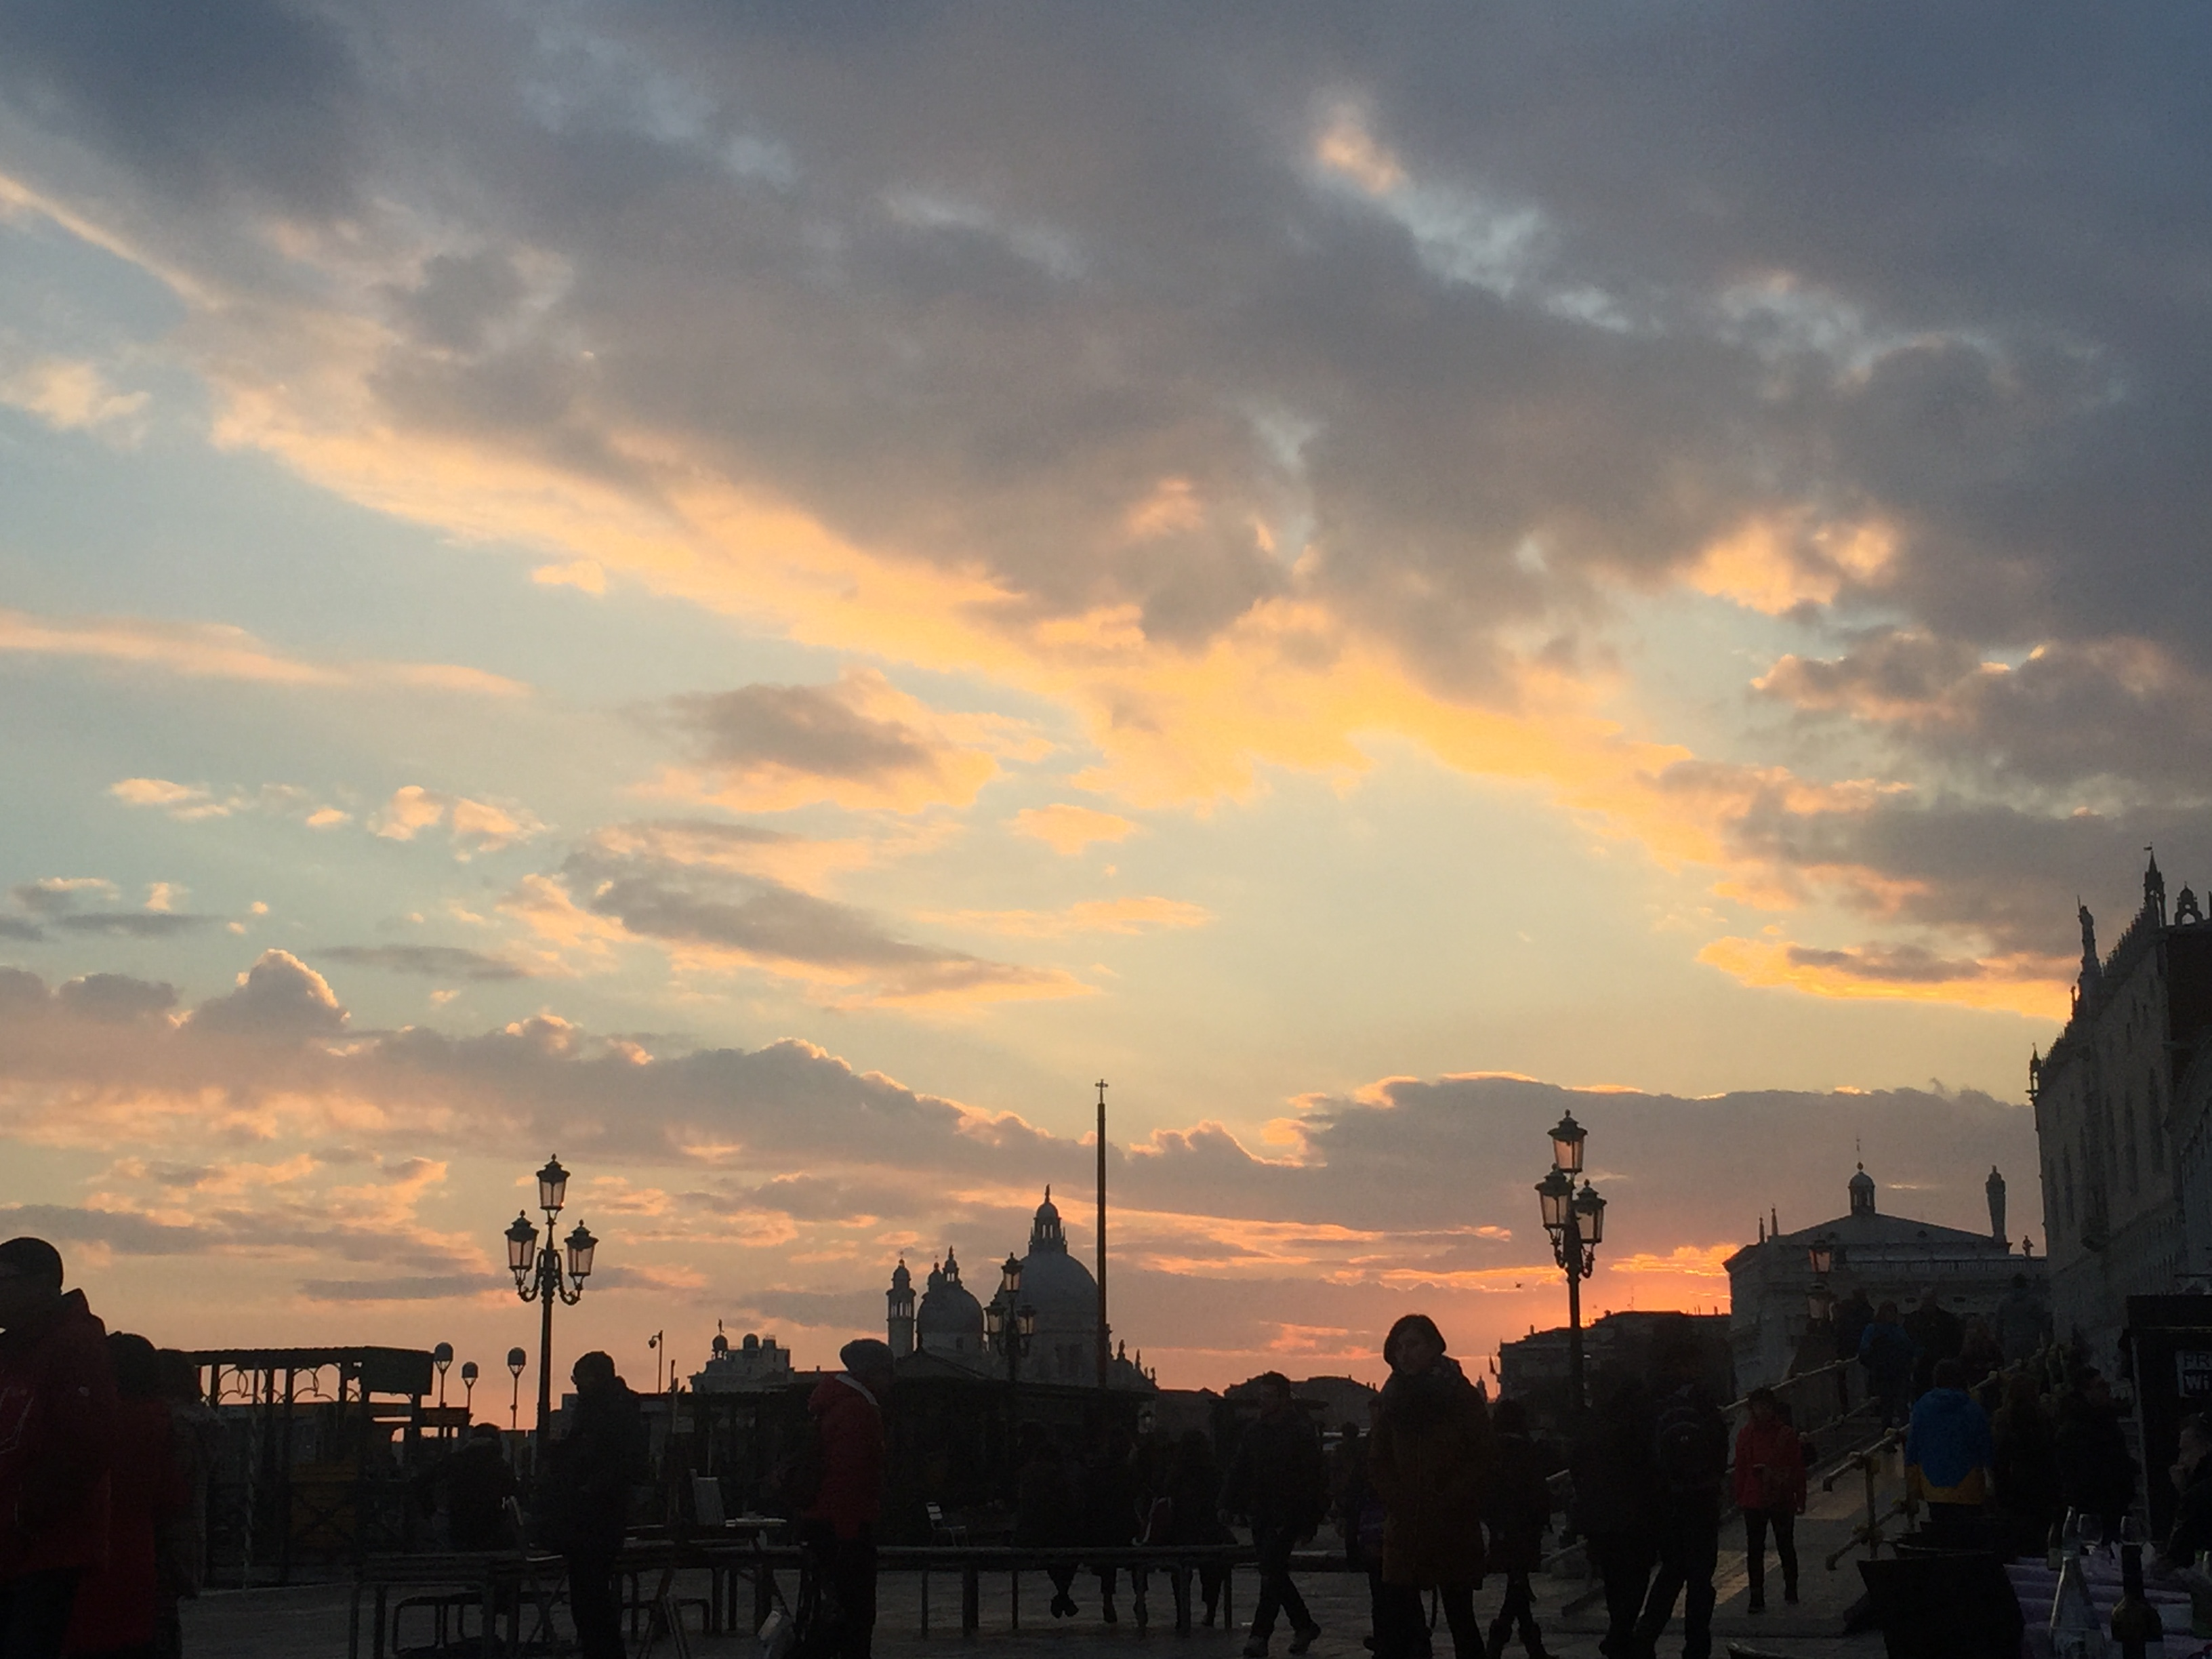 Sunset by the Grand Canal, day 2